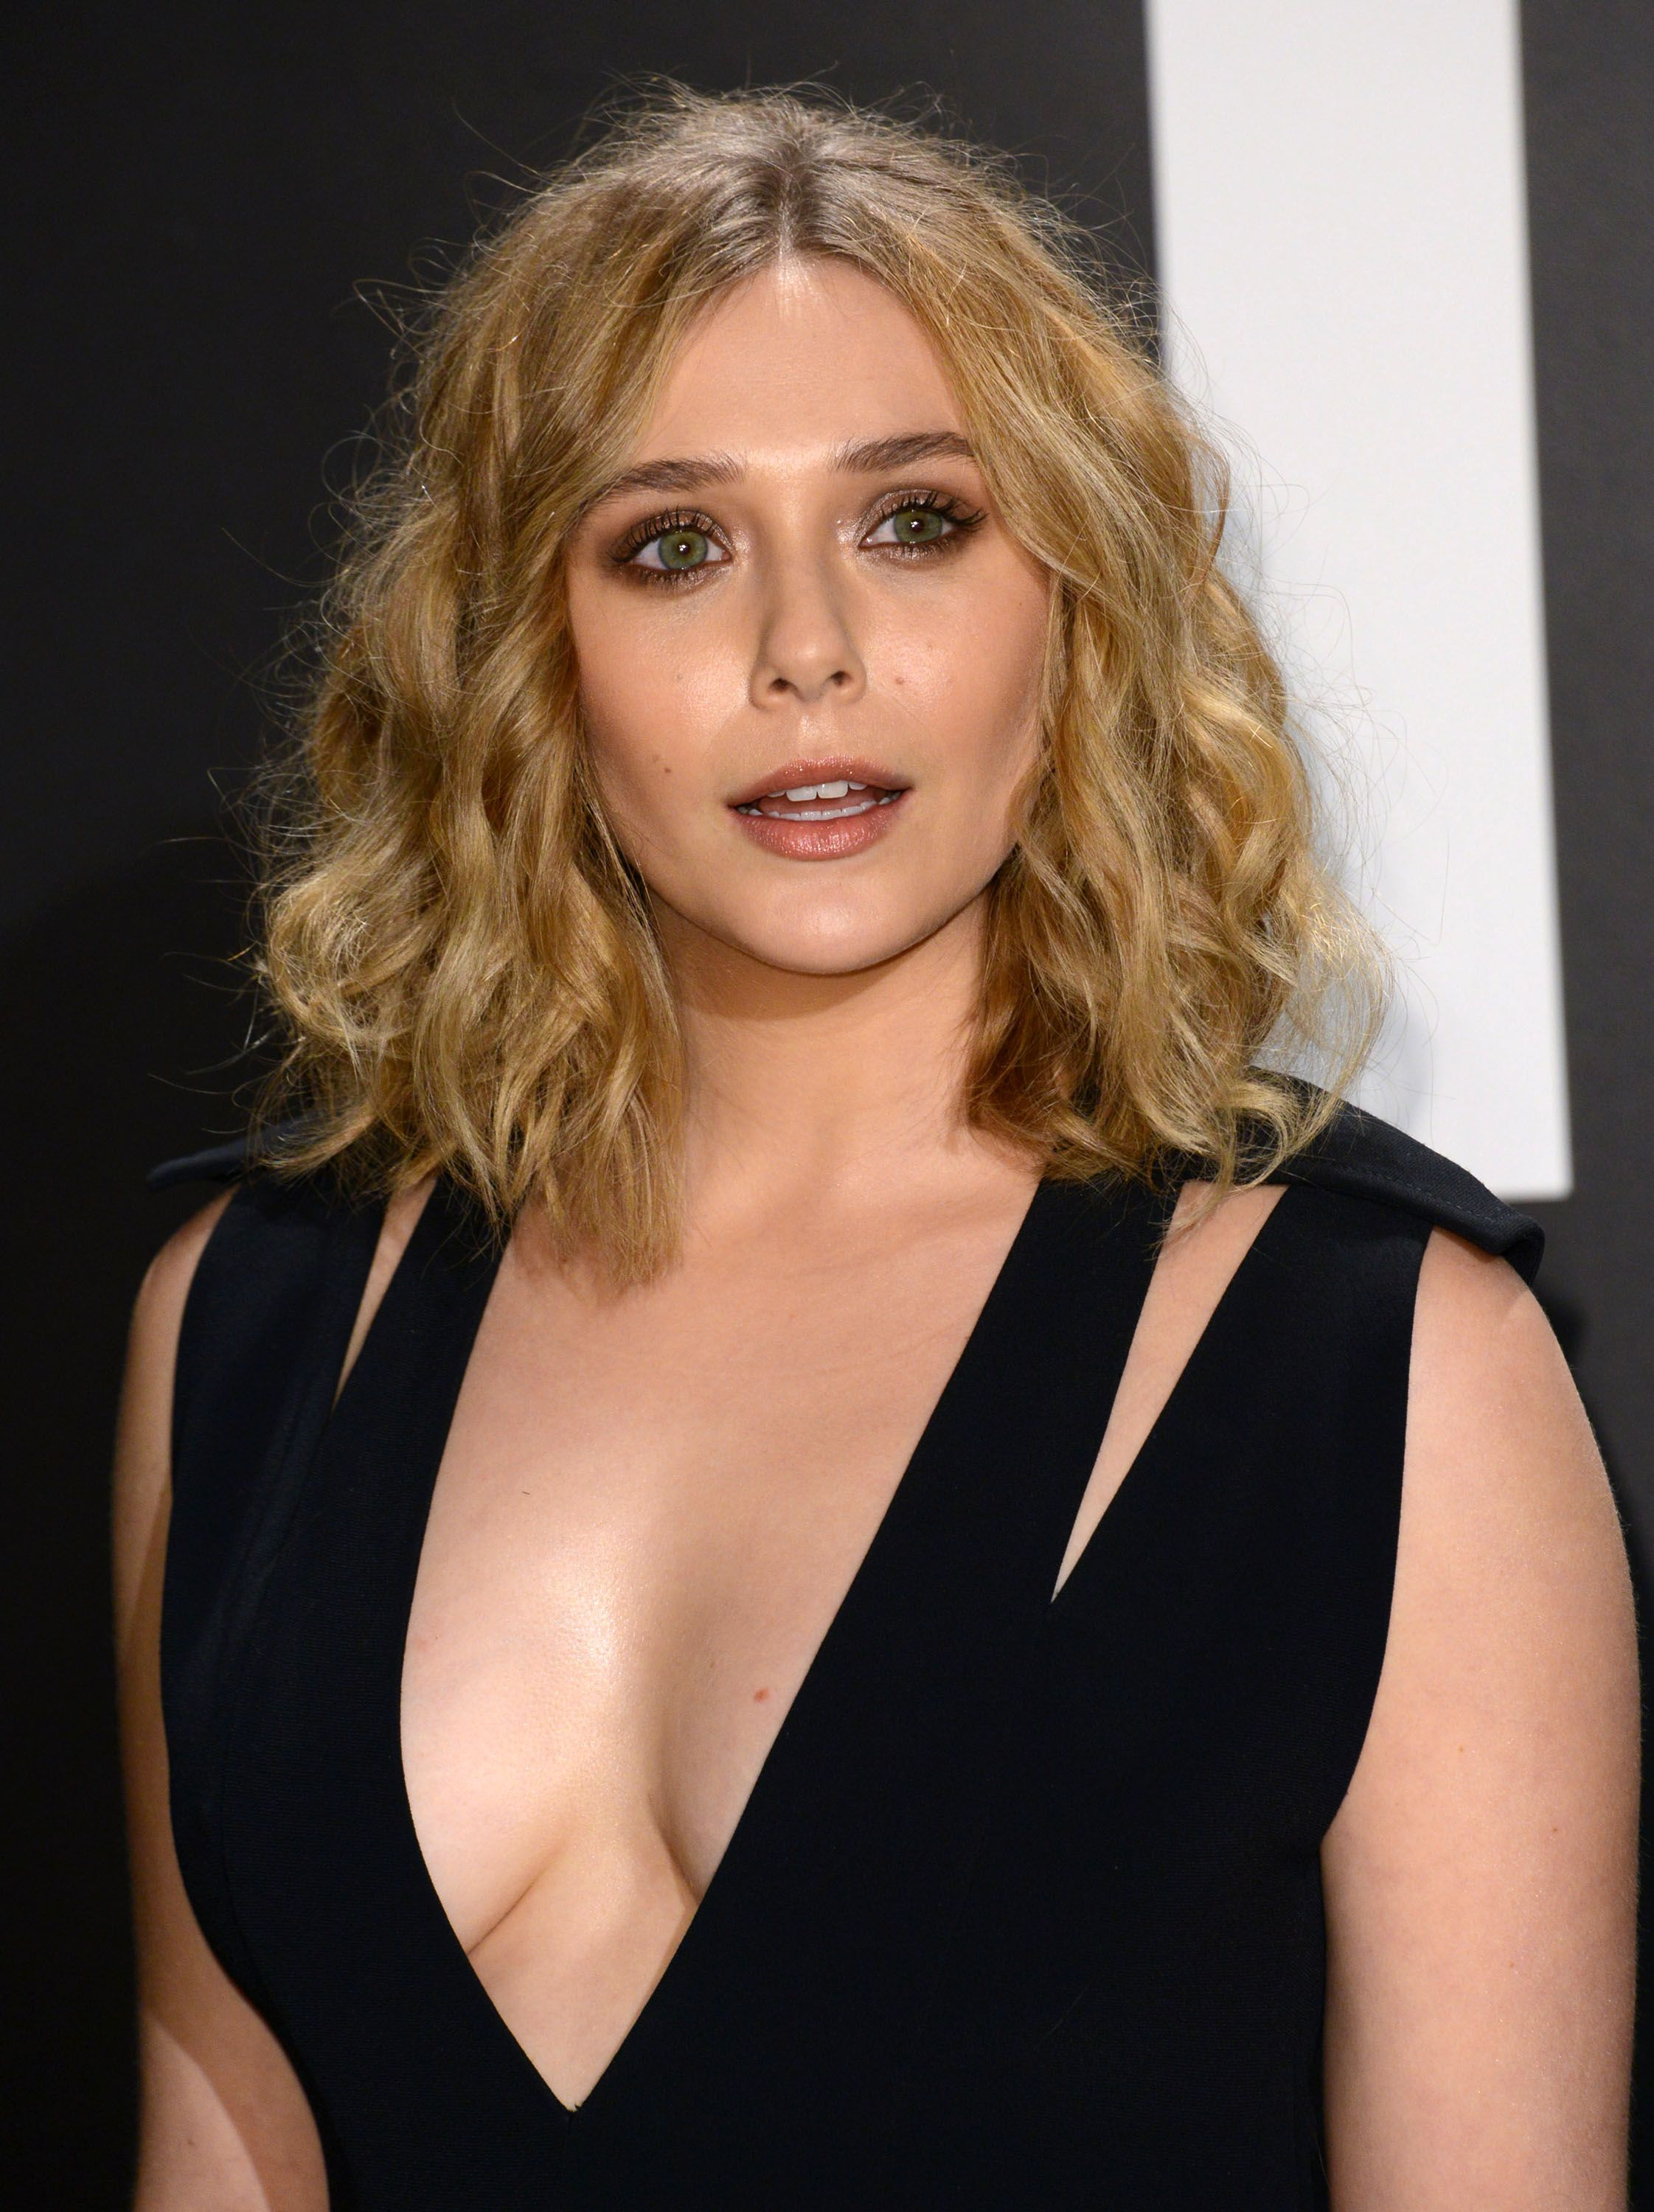 Elizabeth-Olsen-Hot-Cleavage